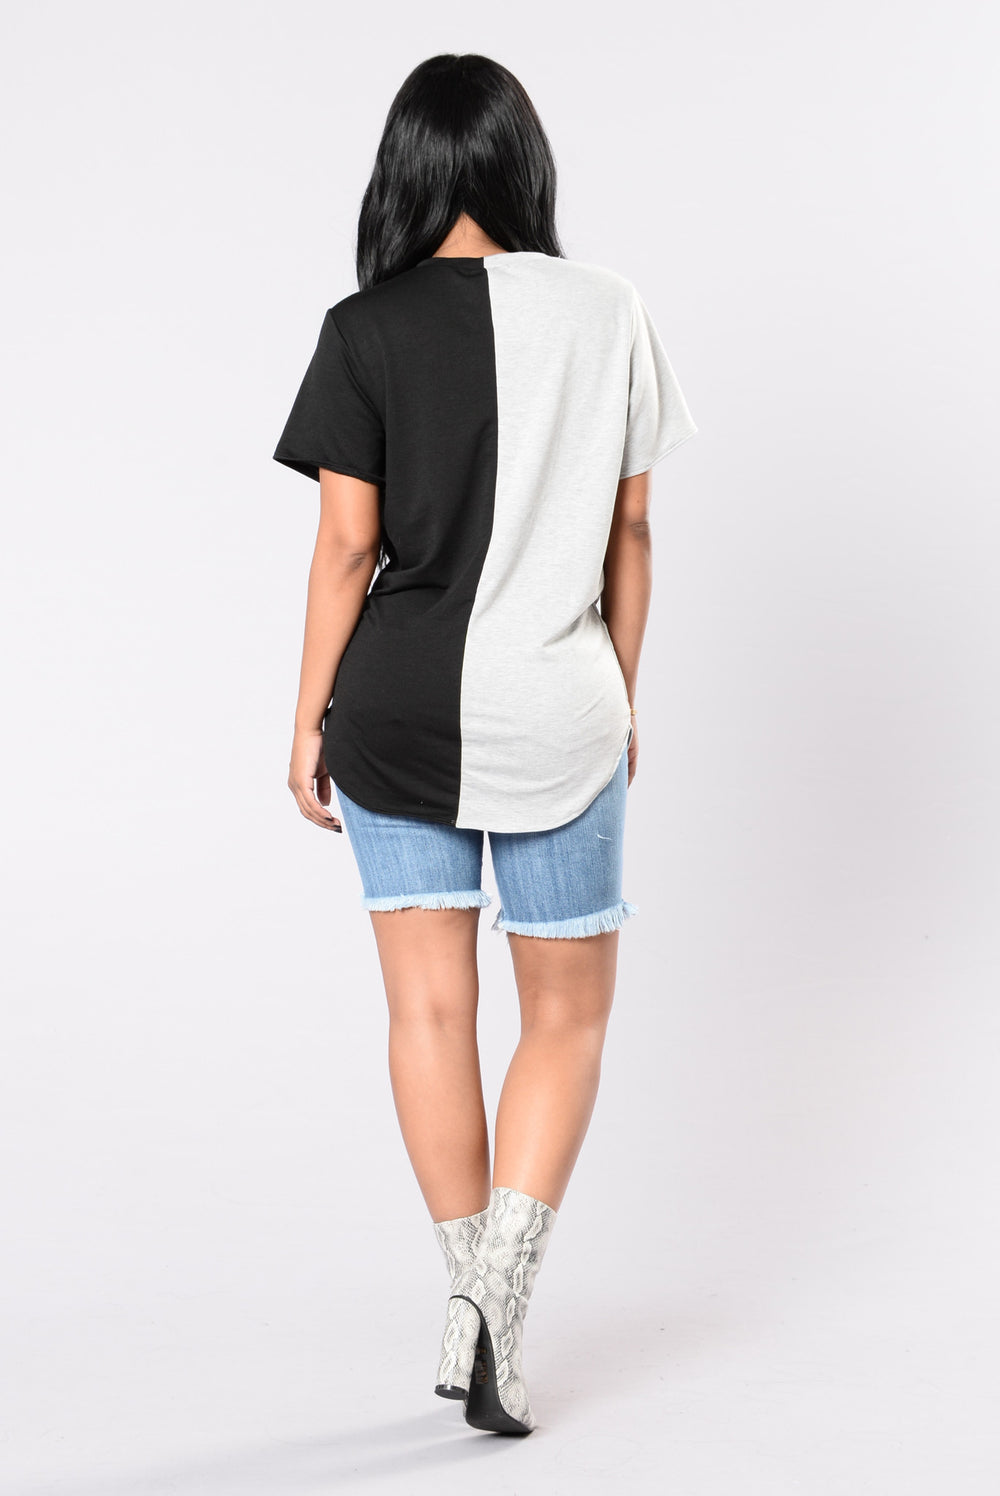 Coast To Coast Top - Grey/Black